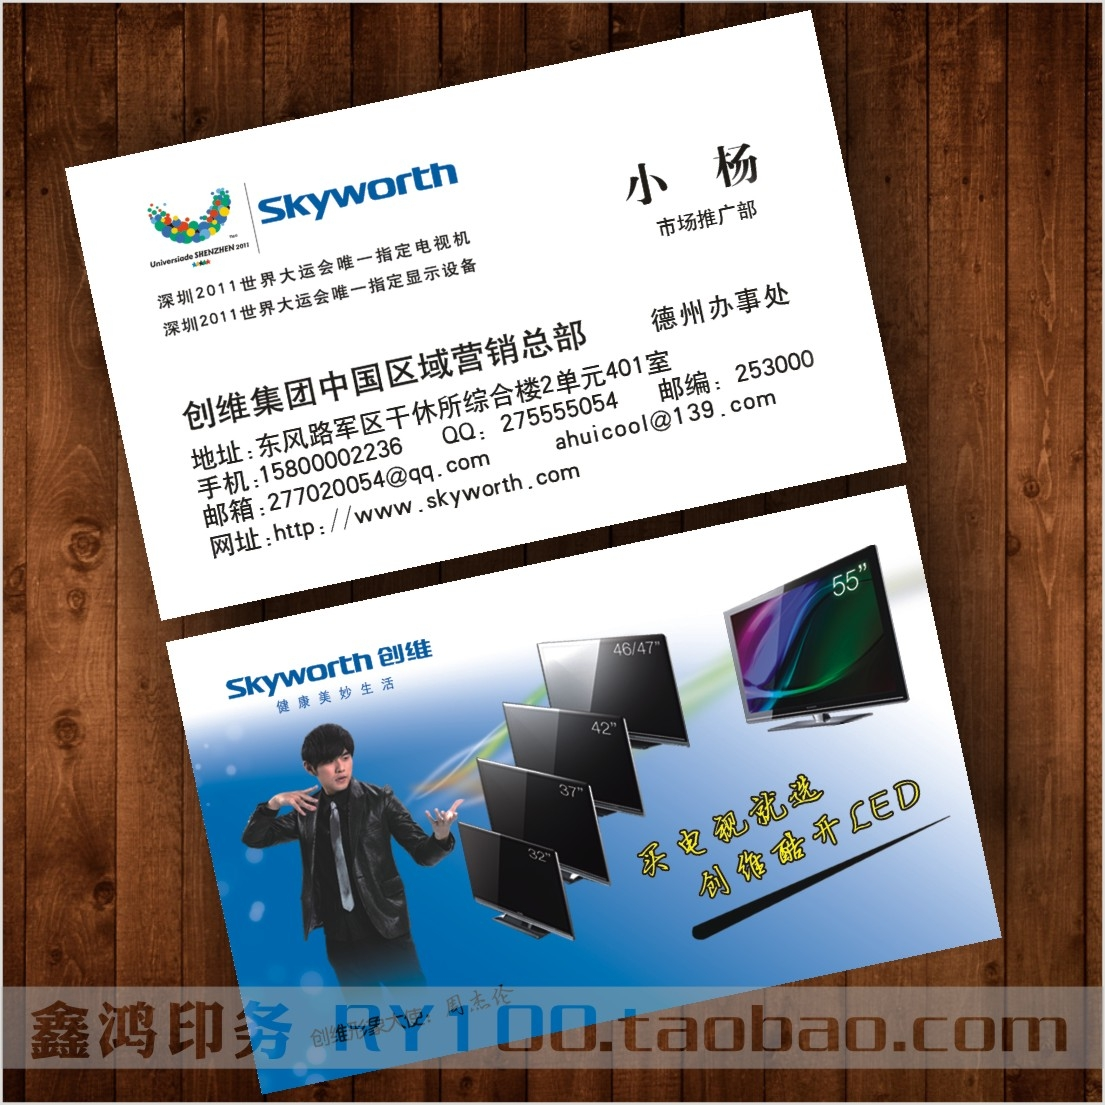 Us 425 Business Card Template Individuality Brief Chuangwei Electric Appliance Small Home Appliance Cdr On Aliexpresscom Alibaba Group